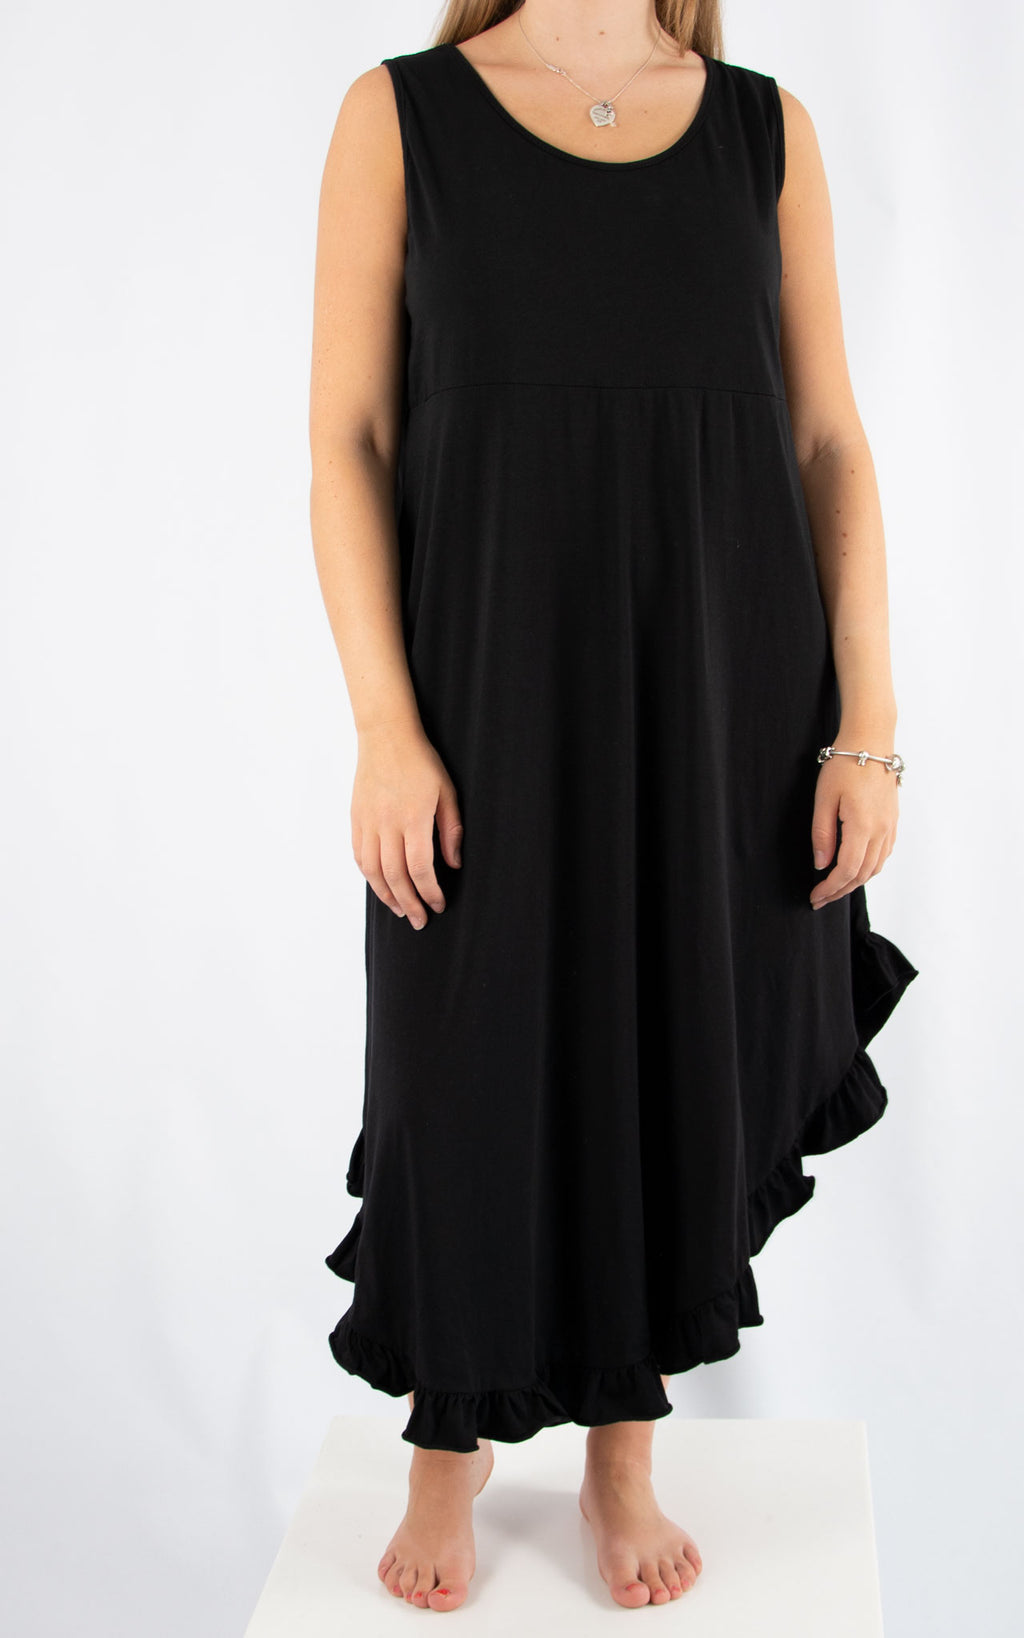 Black Ruffle Maxi Dress | Made in Italy